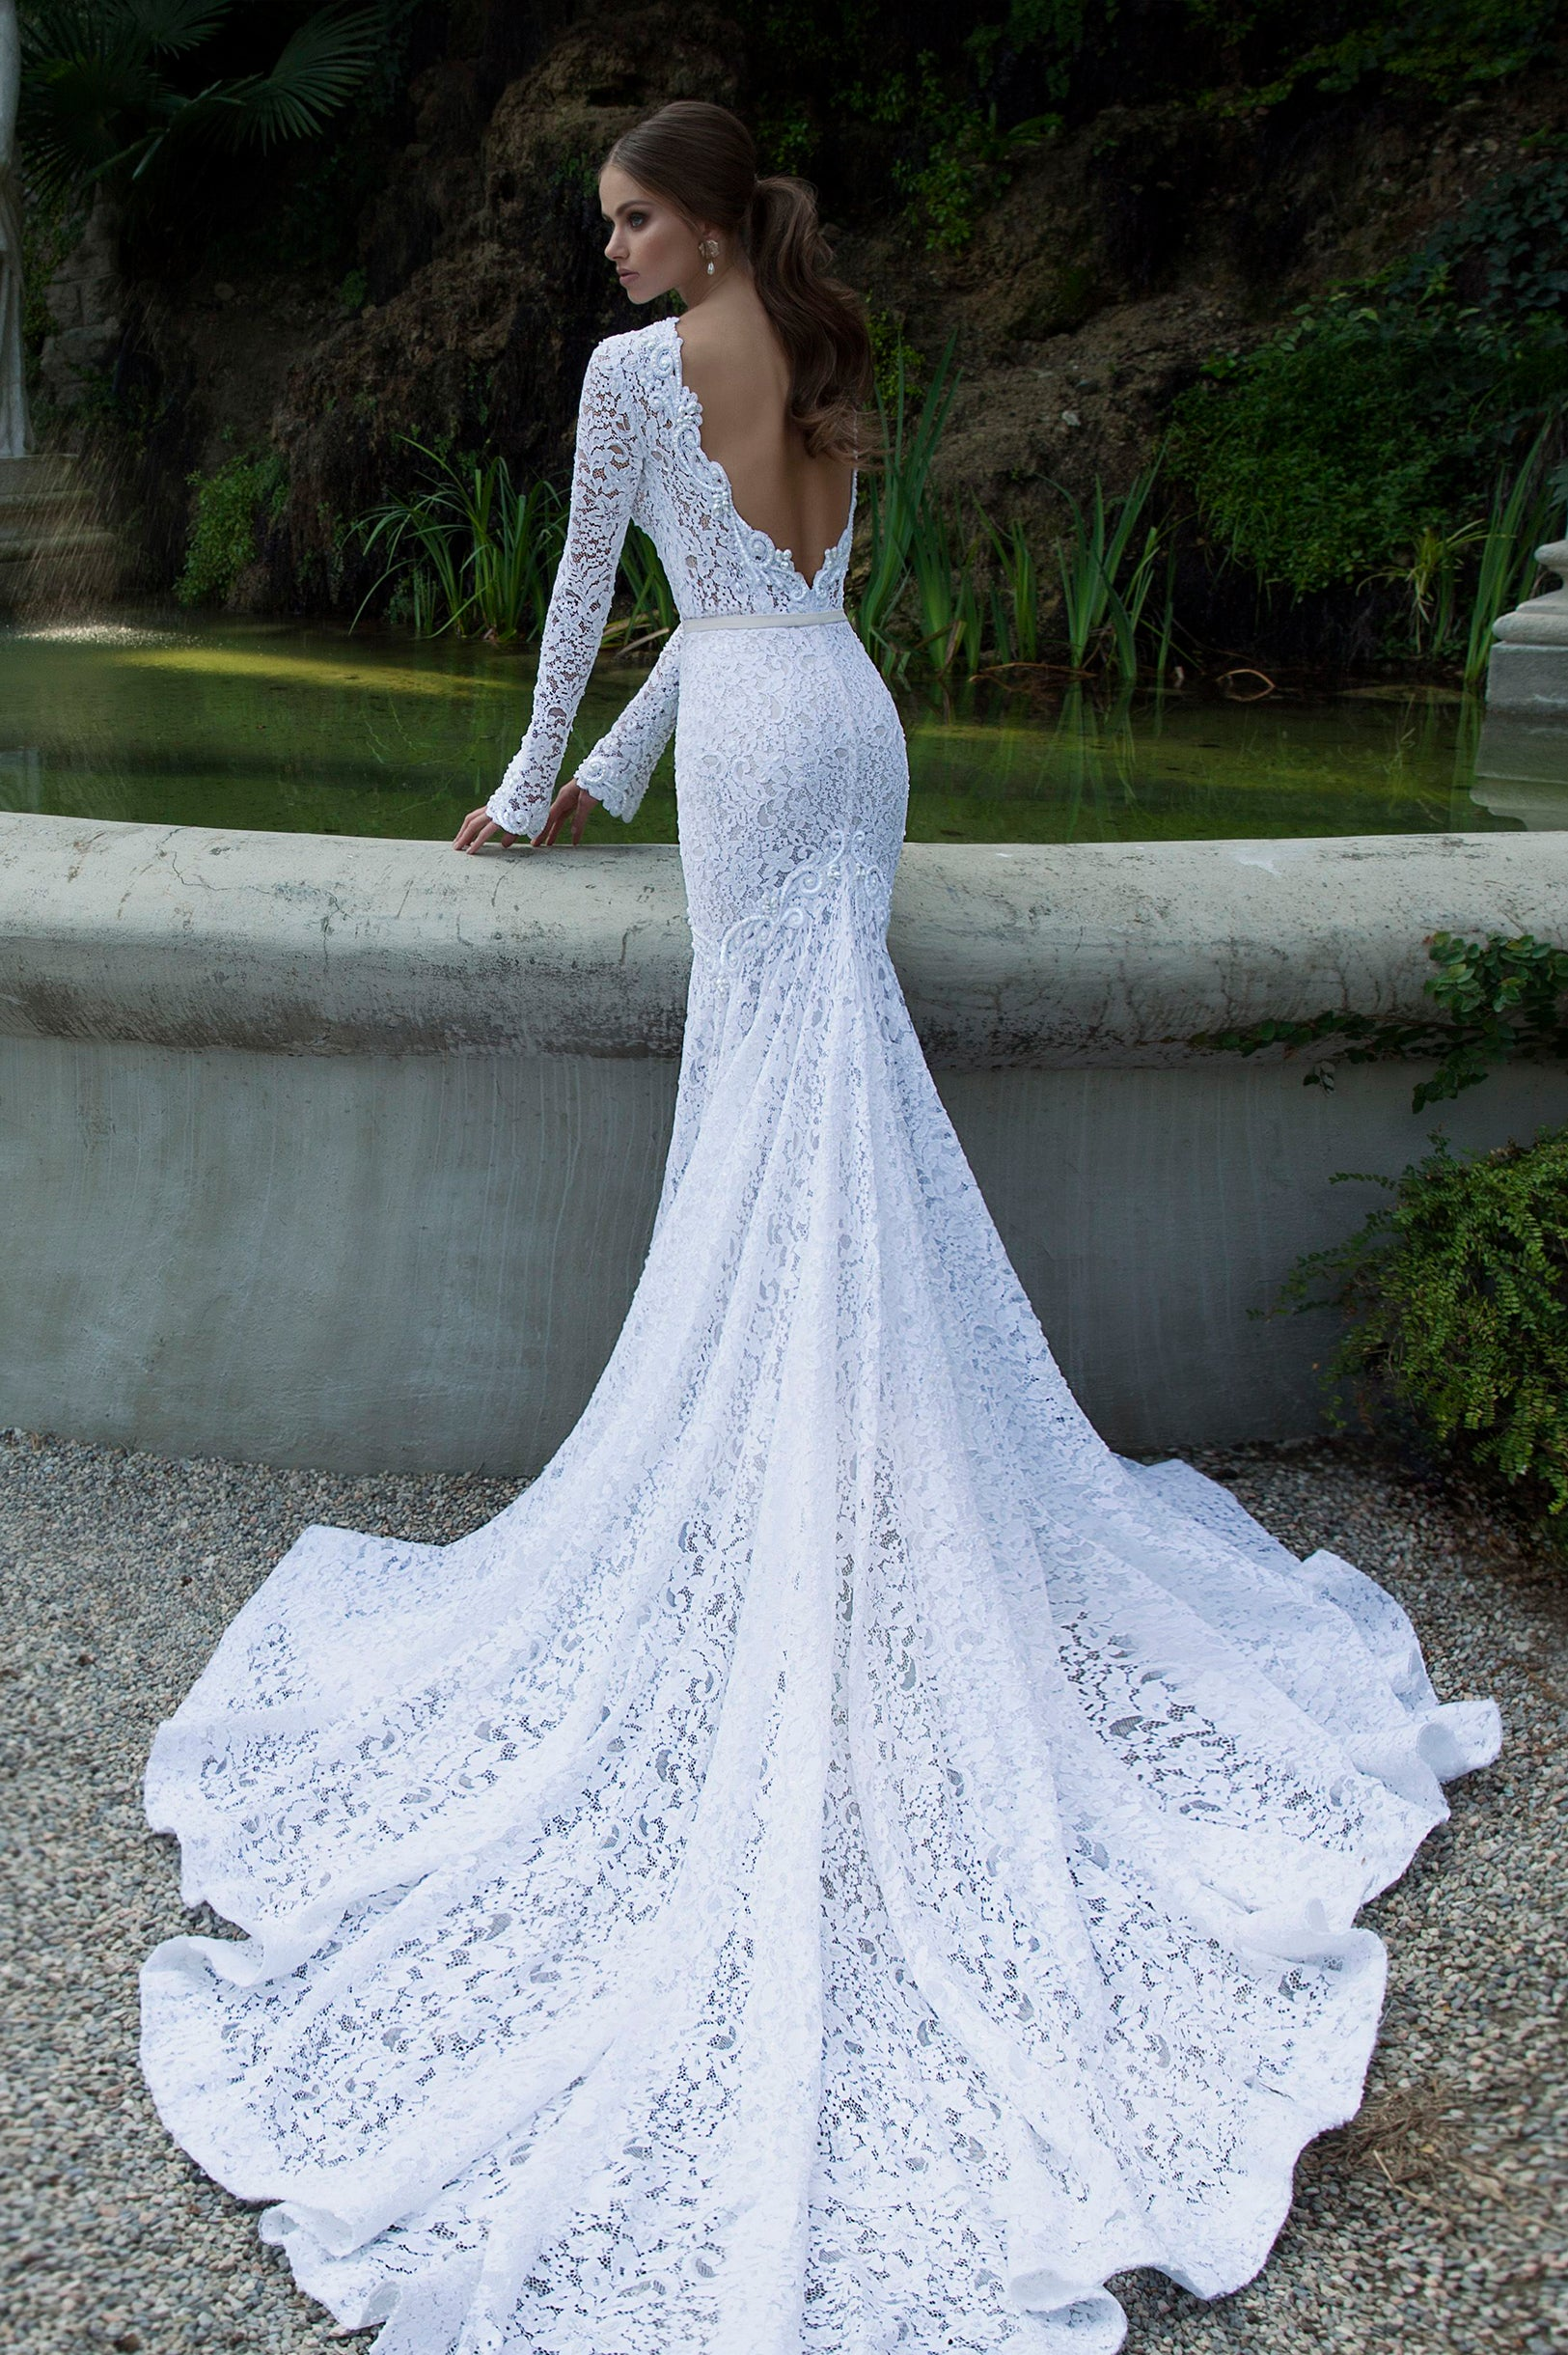 River Lace Wedding Dress | The Lovely Find